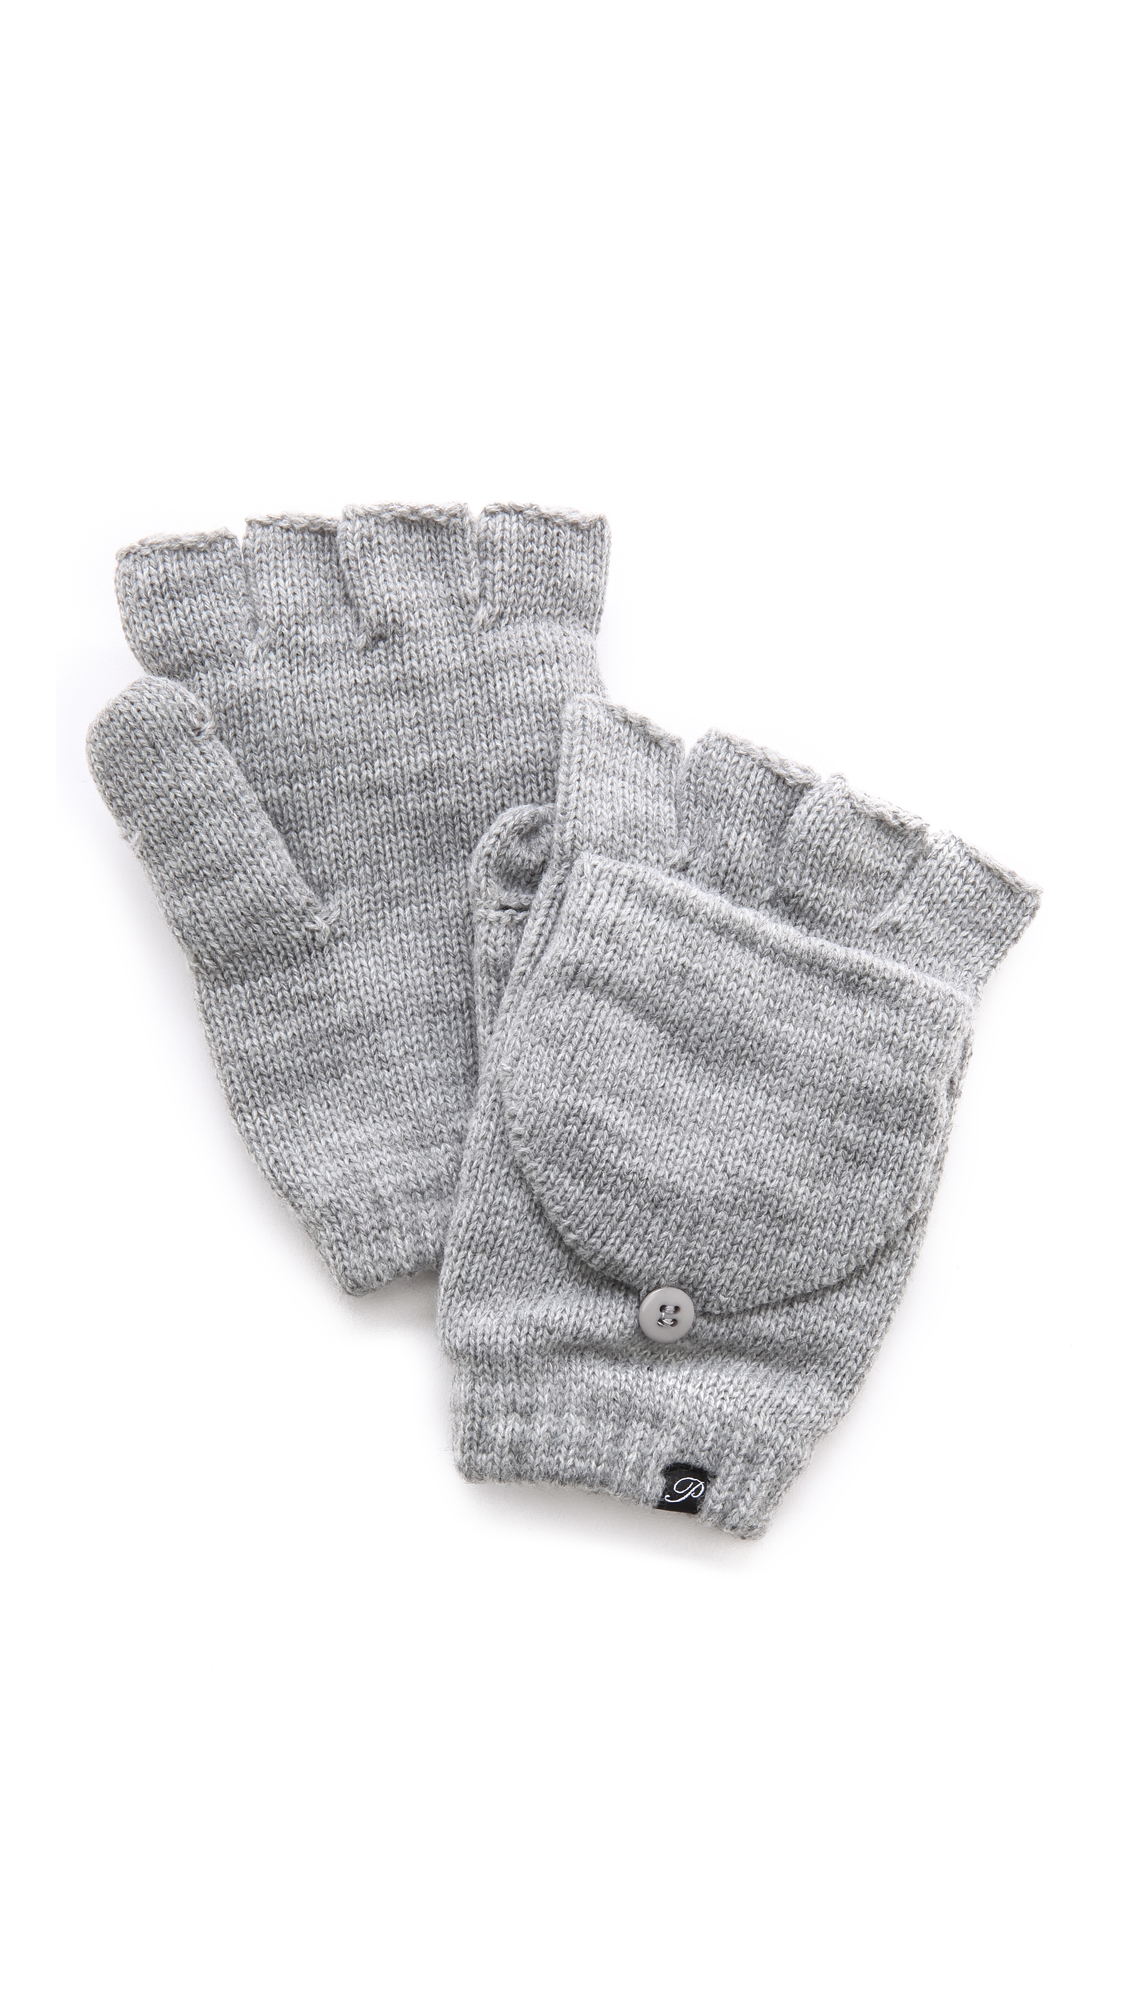 Plush Fleece Lined Texting Mittens - Heather Grey